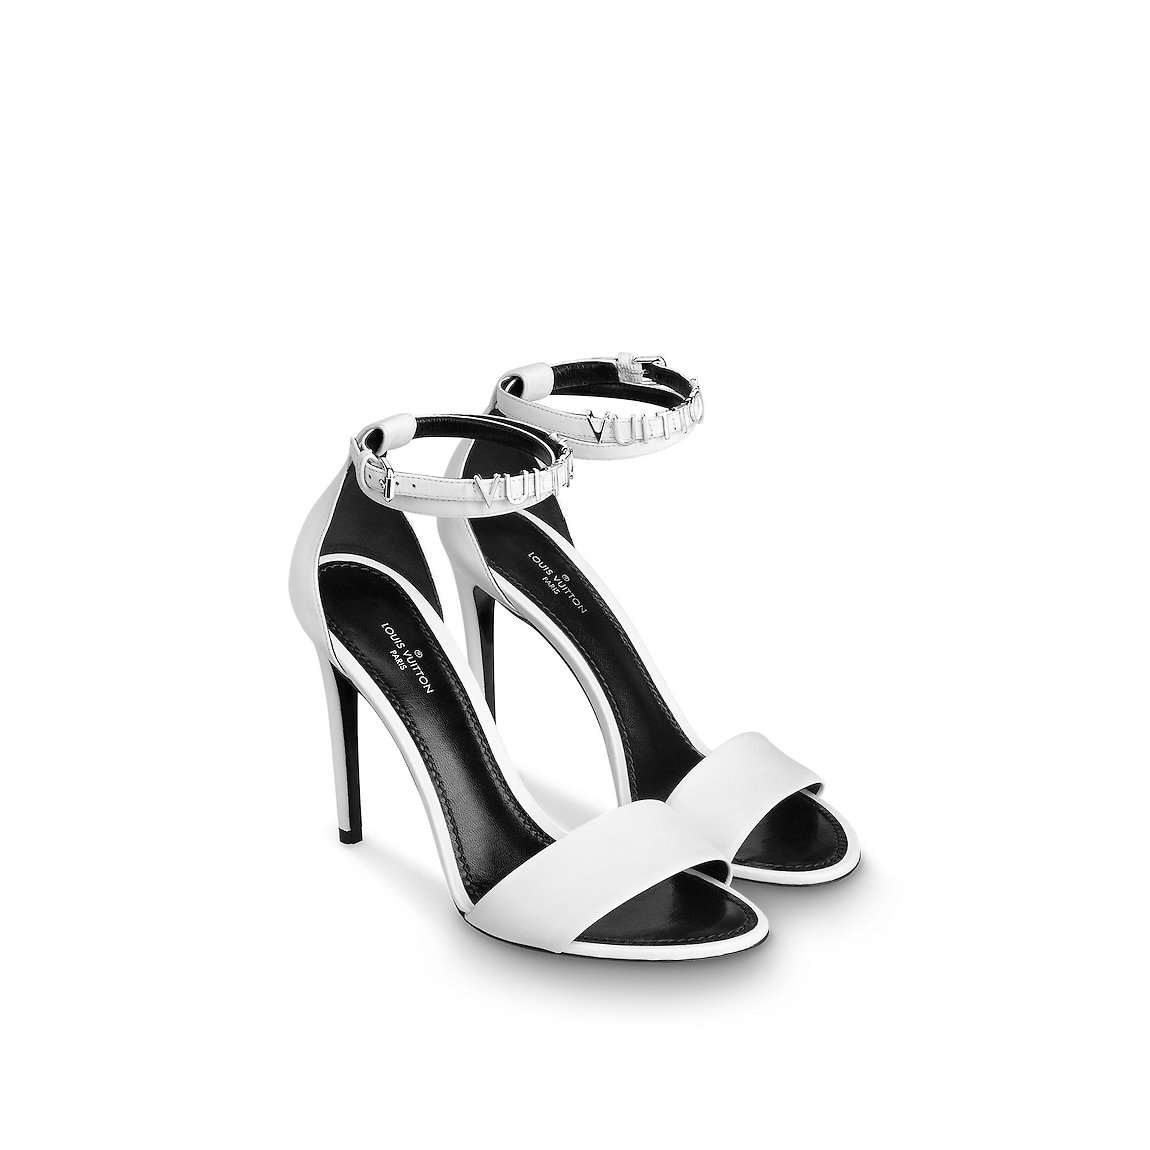 LV White ankle strap heels